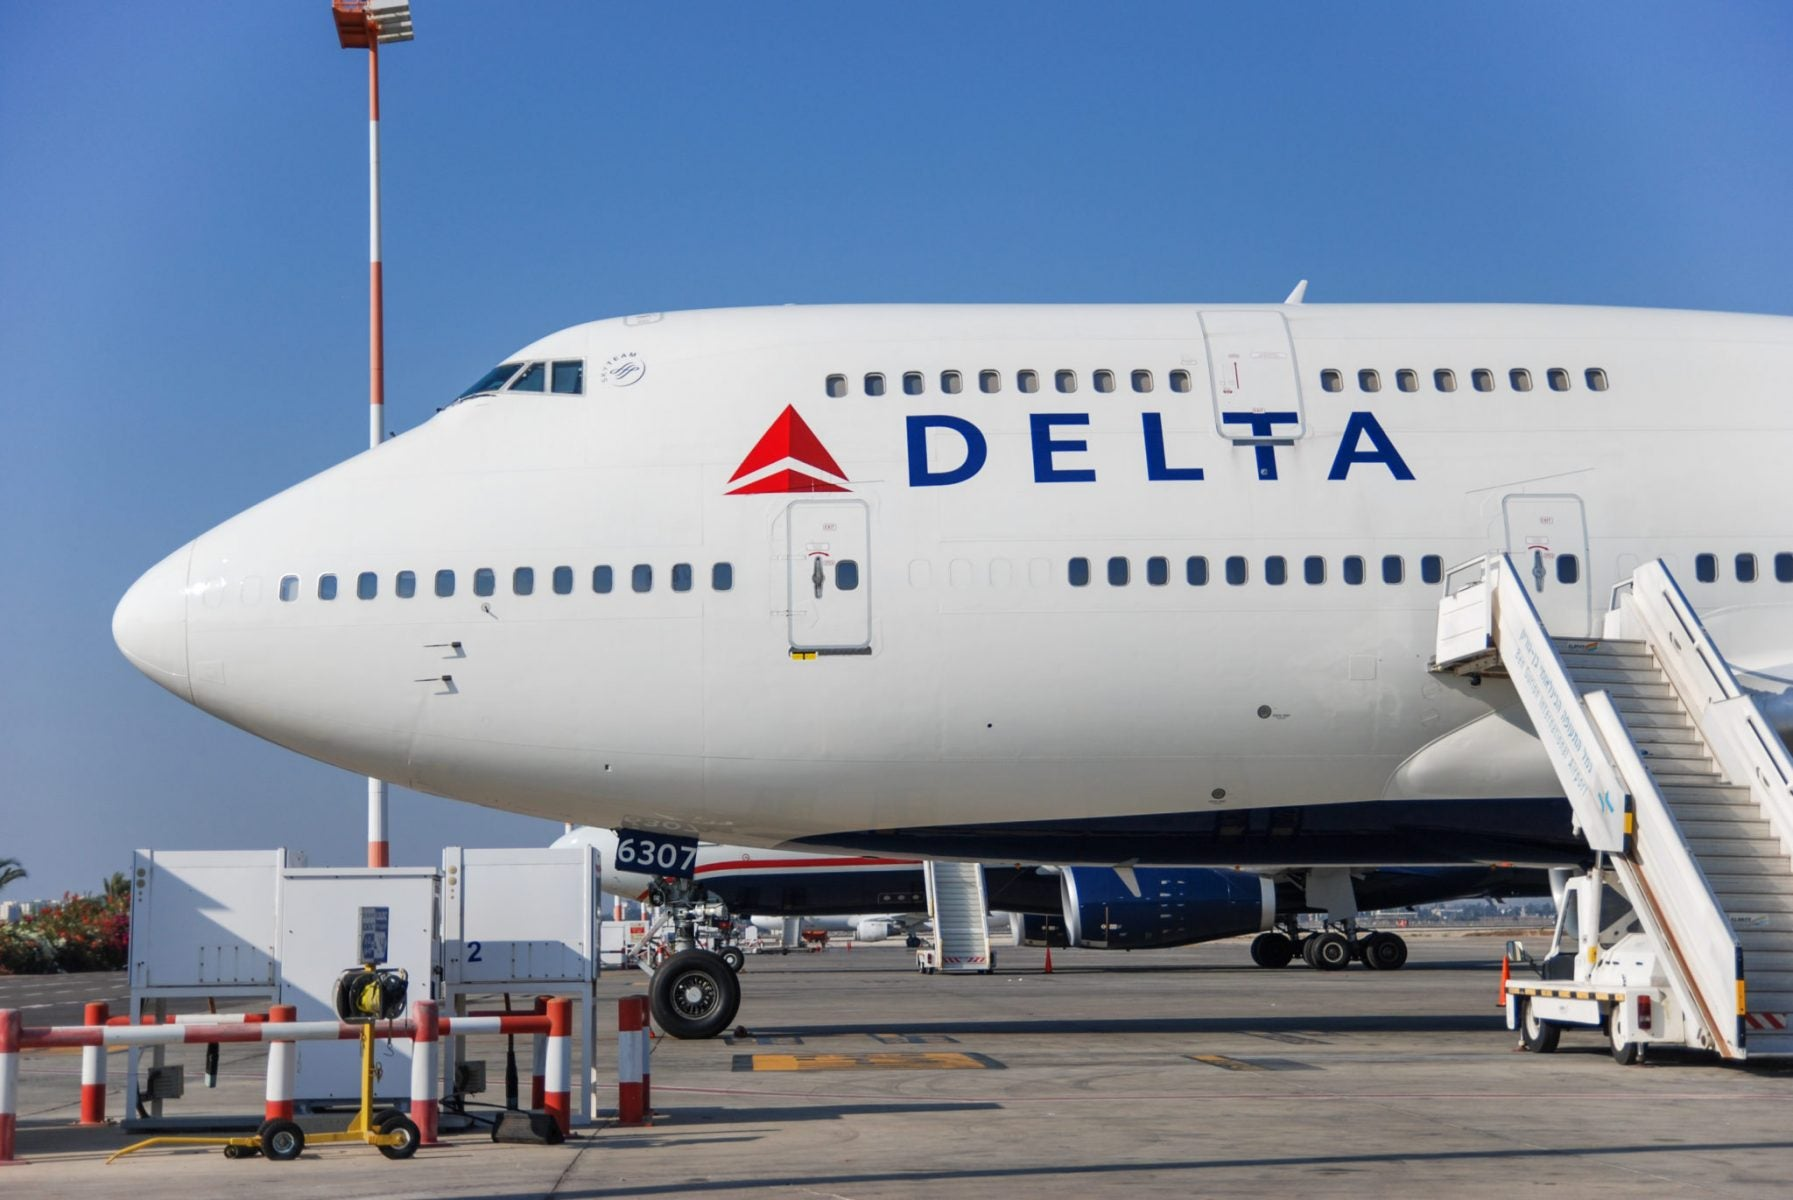 AMEX Delta Reserve for Business Review: A Heavy Hitter for Frequent Business Delta Travelers